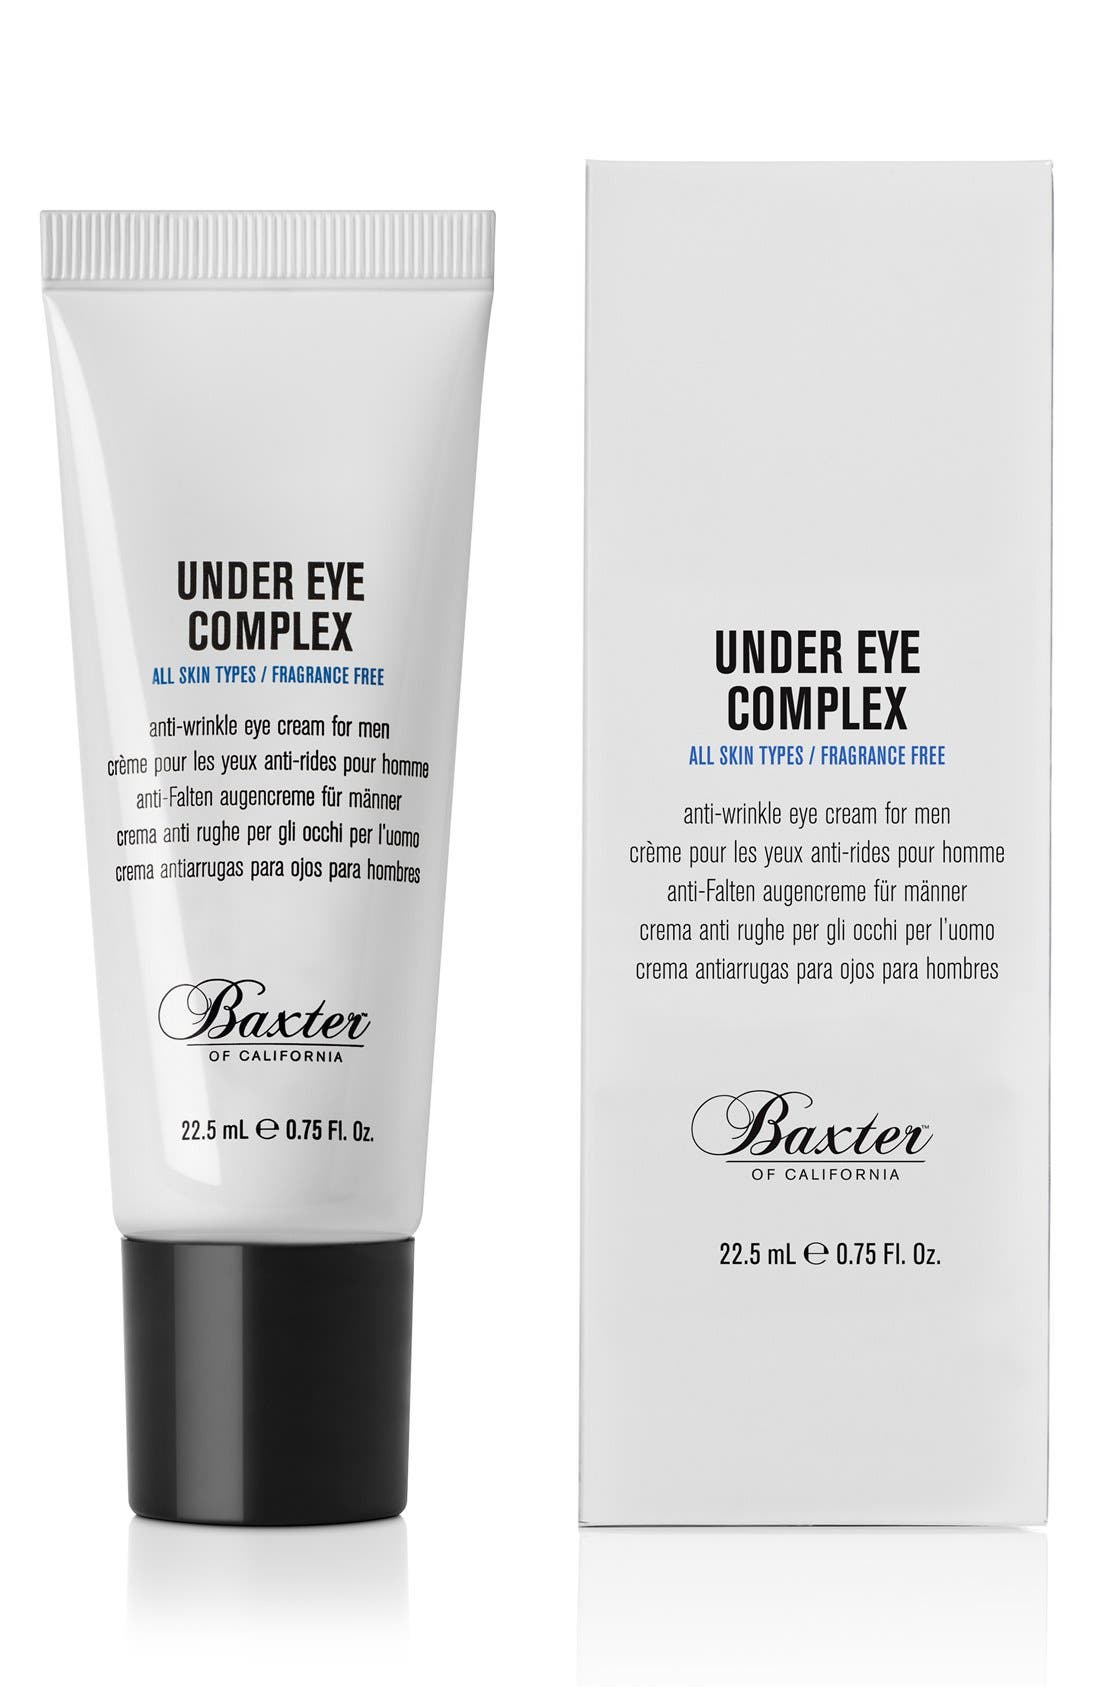 Baxter of California 'Under Eye Complex' Anti-Wrinkle Eye Cream